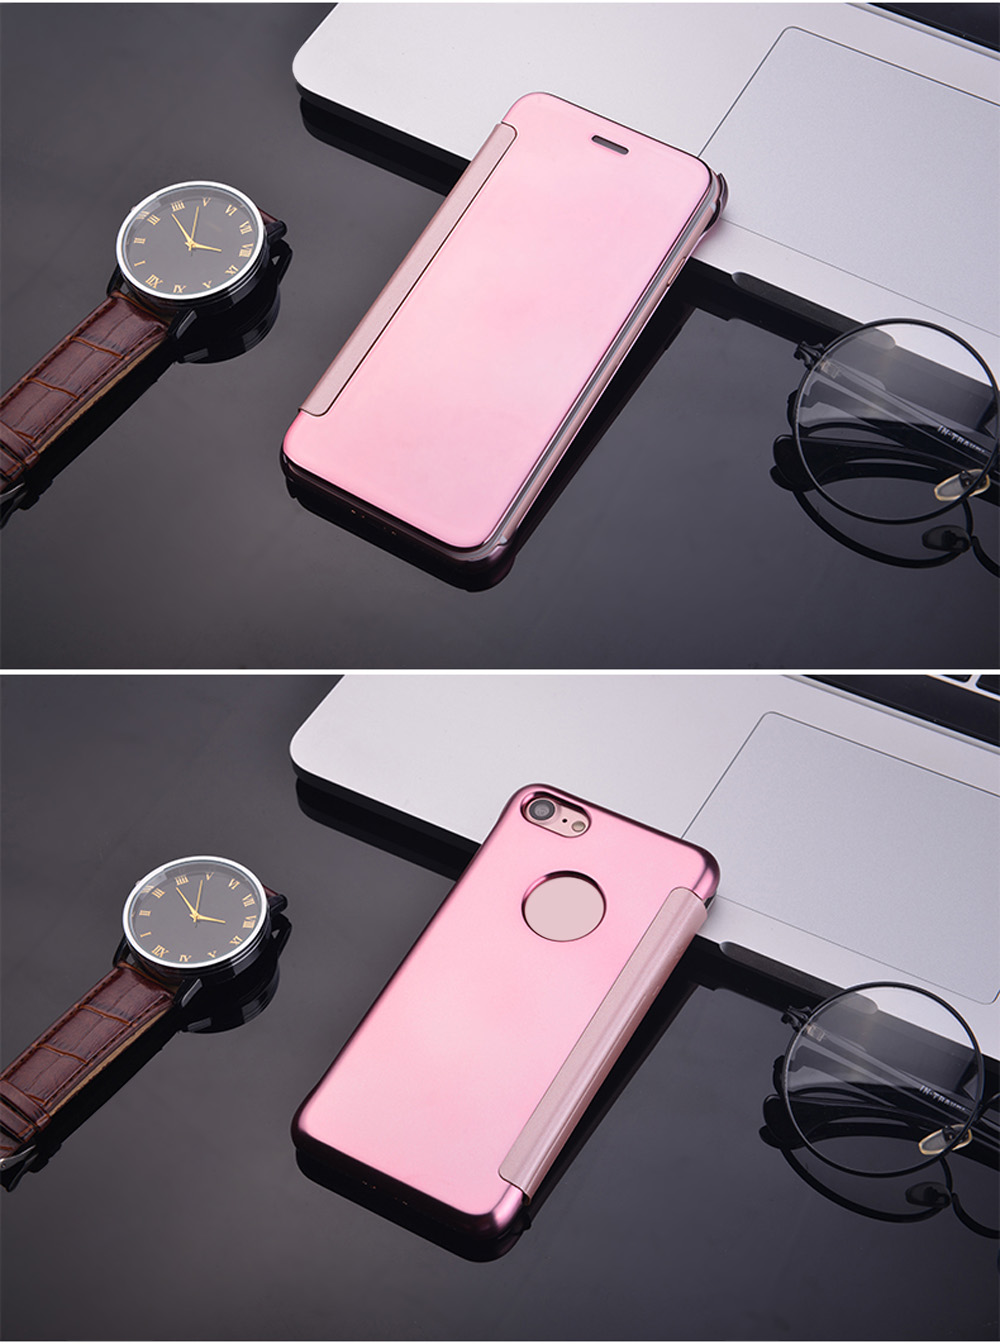 Mirror Luxury Hard PC Flip Cover Case for iPhone 7 4.7 inch